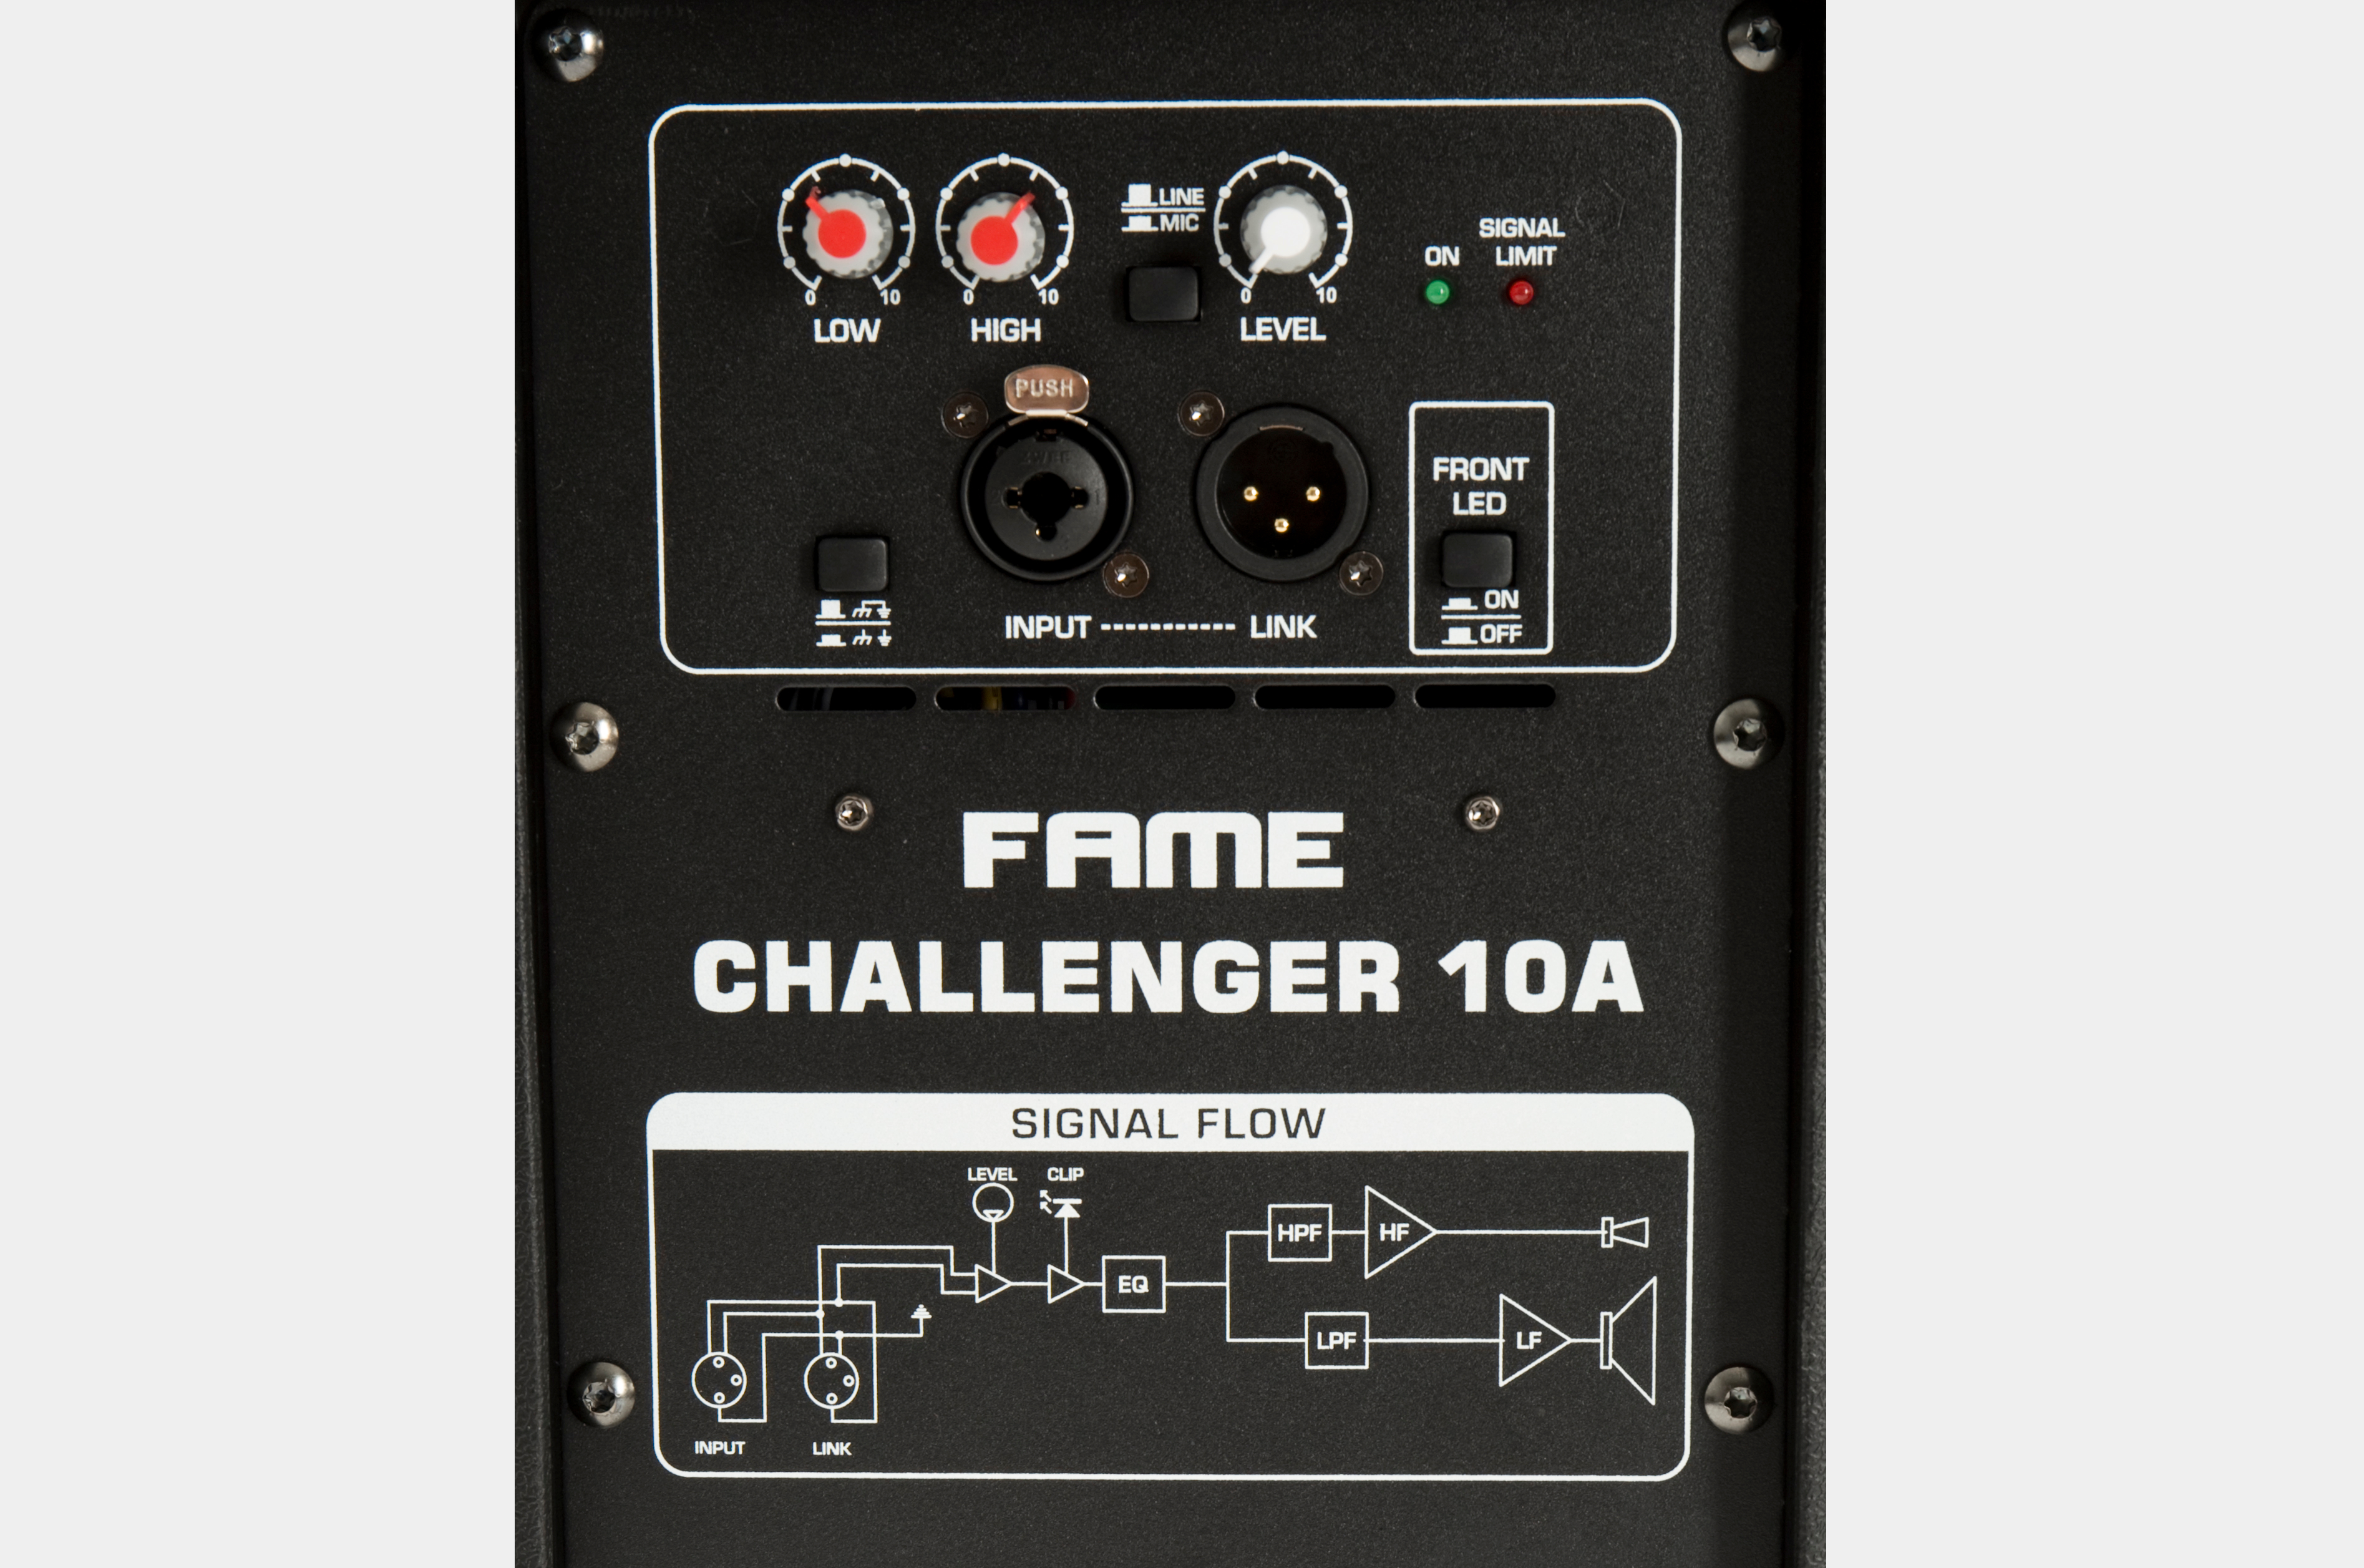 fame challenger 10A rear panel